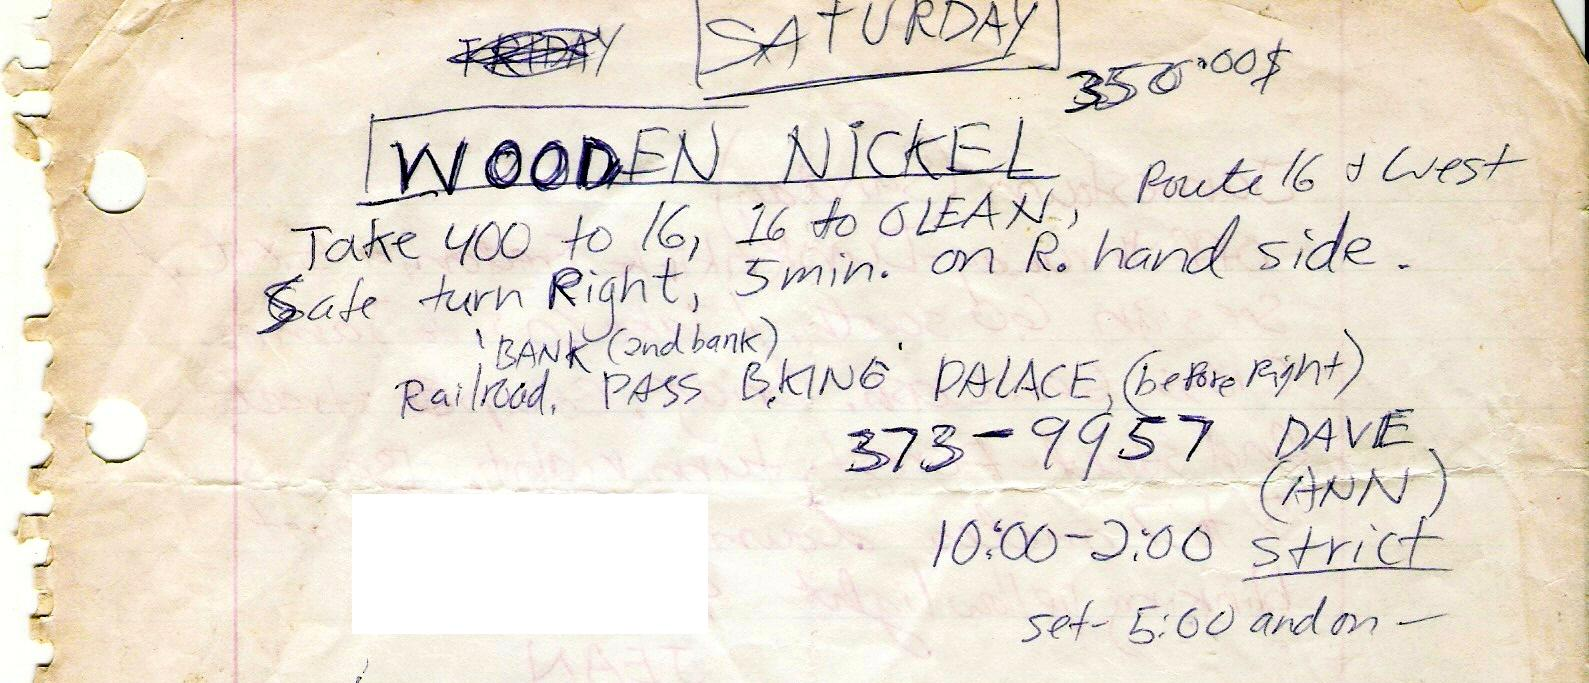 Directions to the Wooden Nickel - Olean, NY 09.19.1981